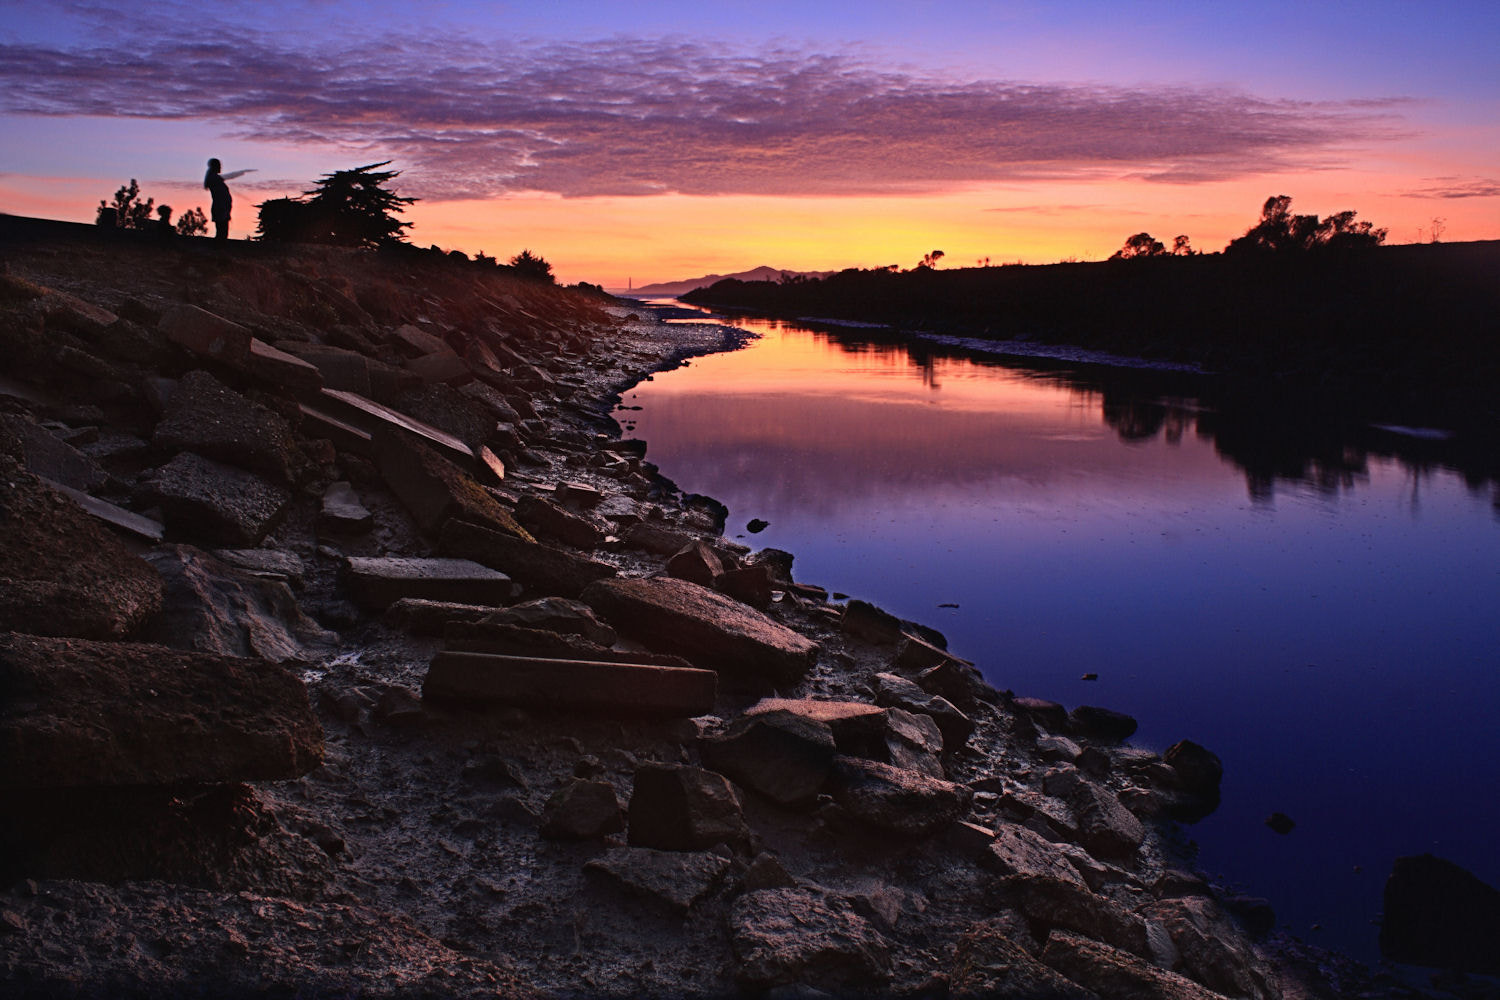 Photograph Pt. Isabel sunset by Greg K on 500px